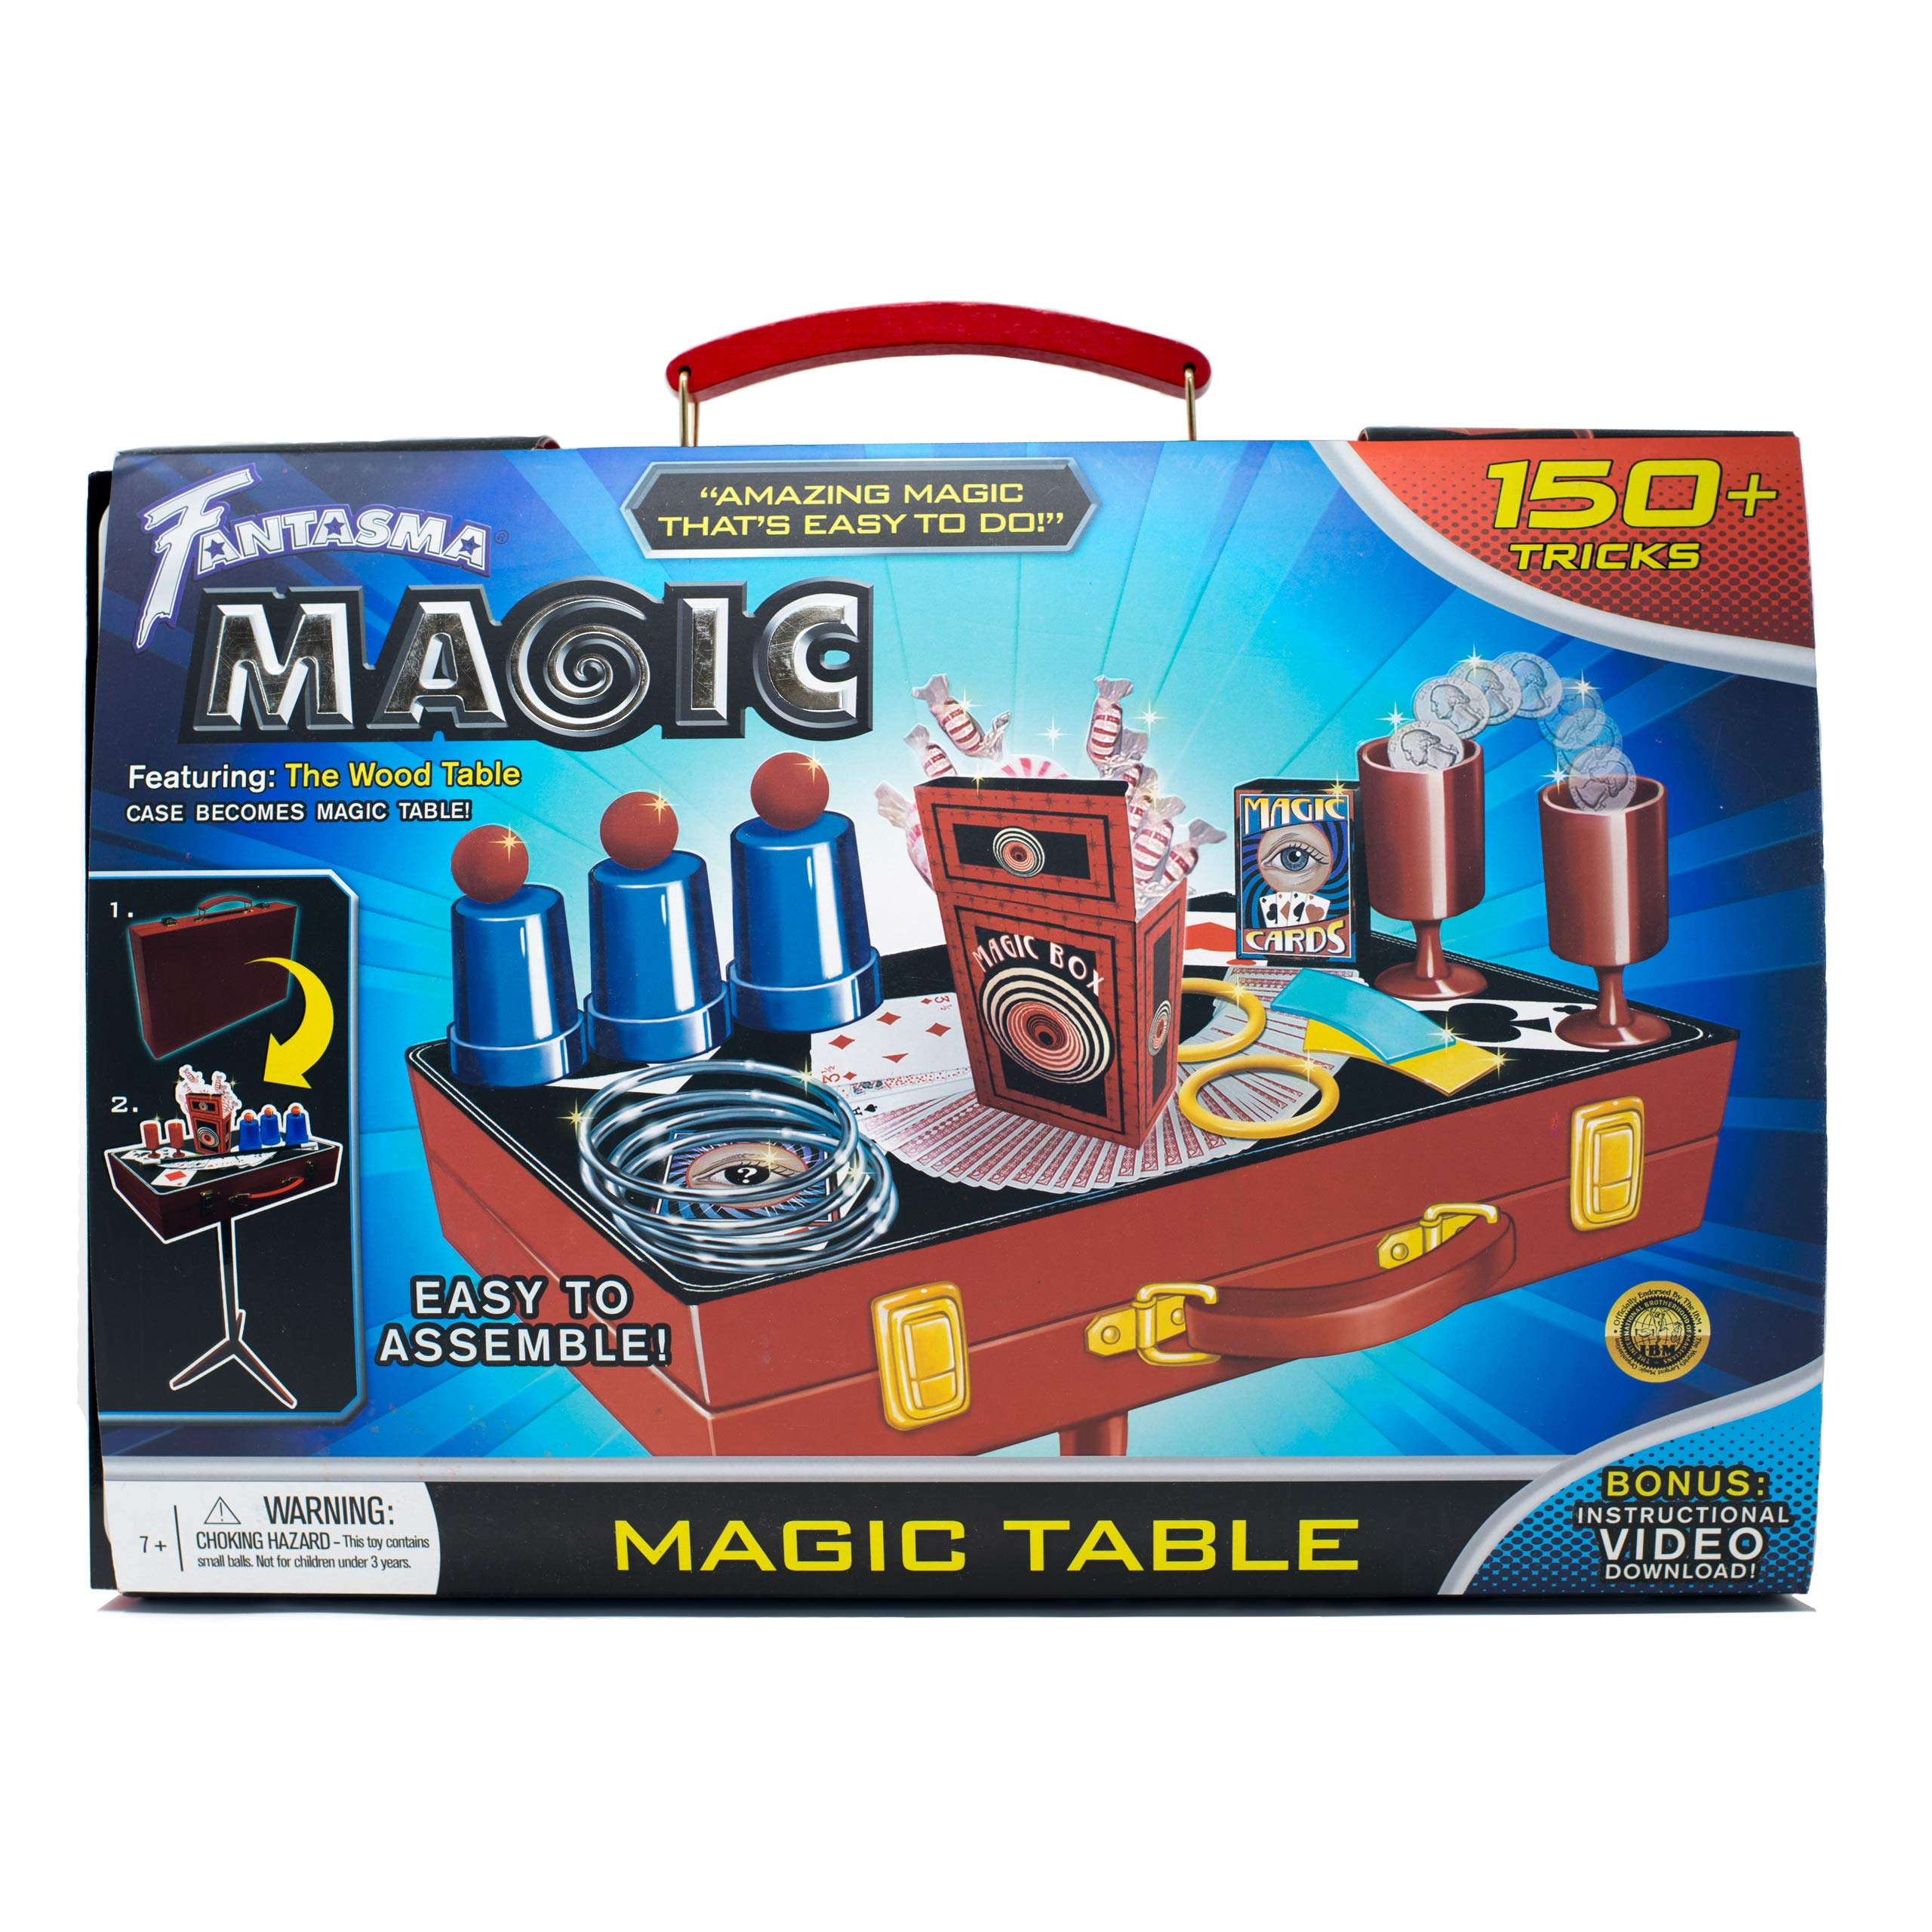 Fantasma Magic Trick Learning Kit for Kids and Adults - Magic Set with Wooden Carrying Case and Magician's Table Combo - Learn 150 Magic Tricks - 7 Years and Older by Fantasma